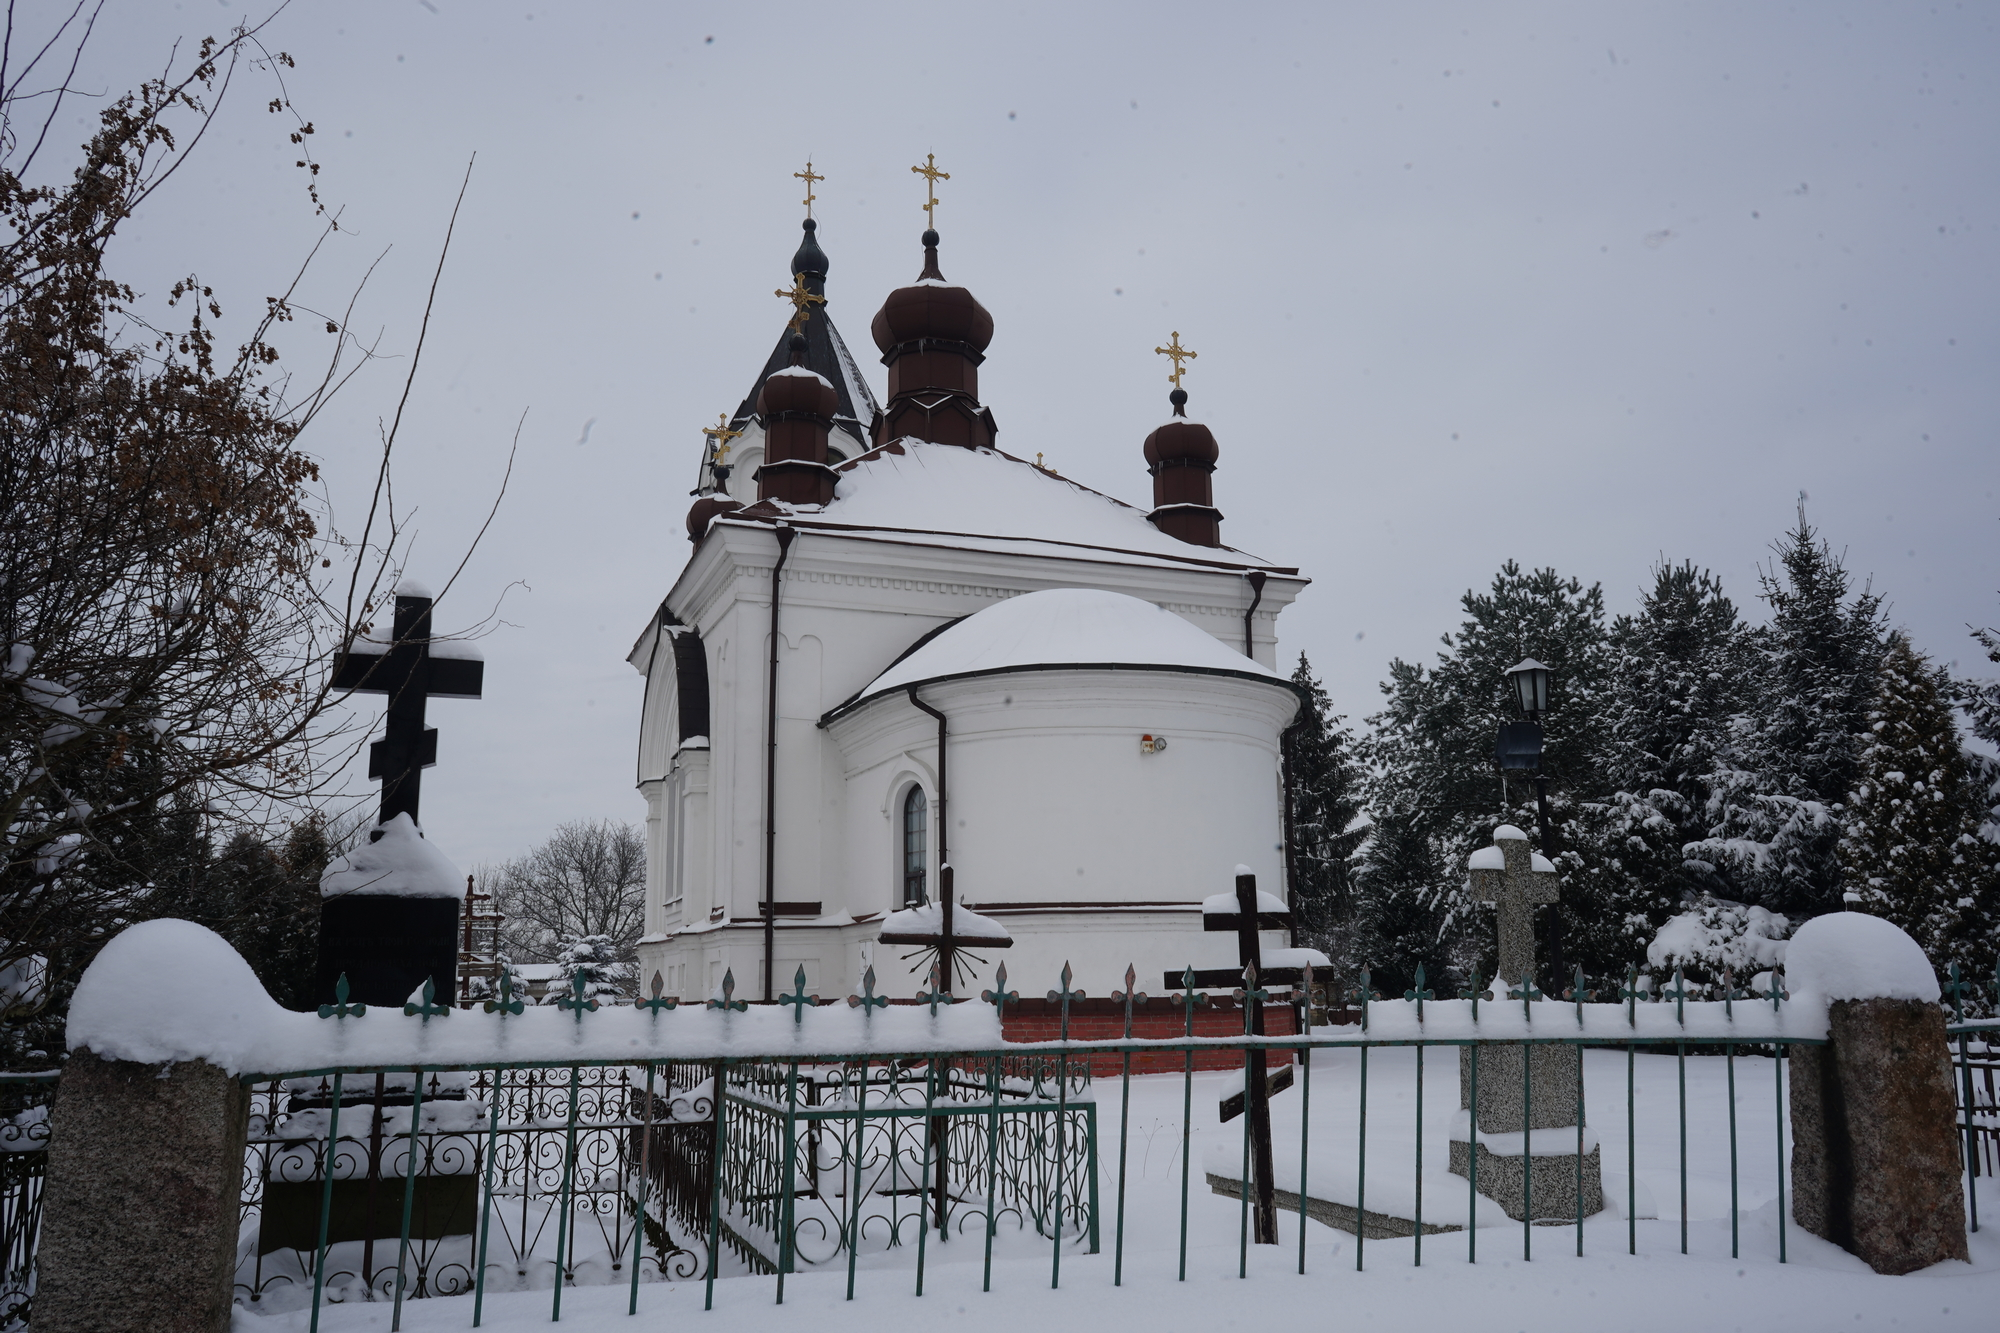 The Orthodox church in Choroszcz